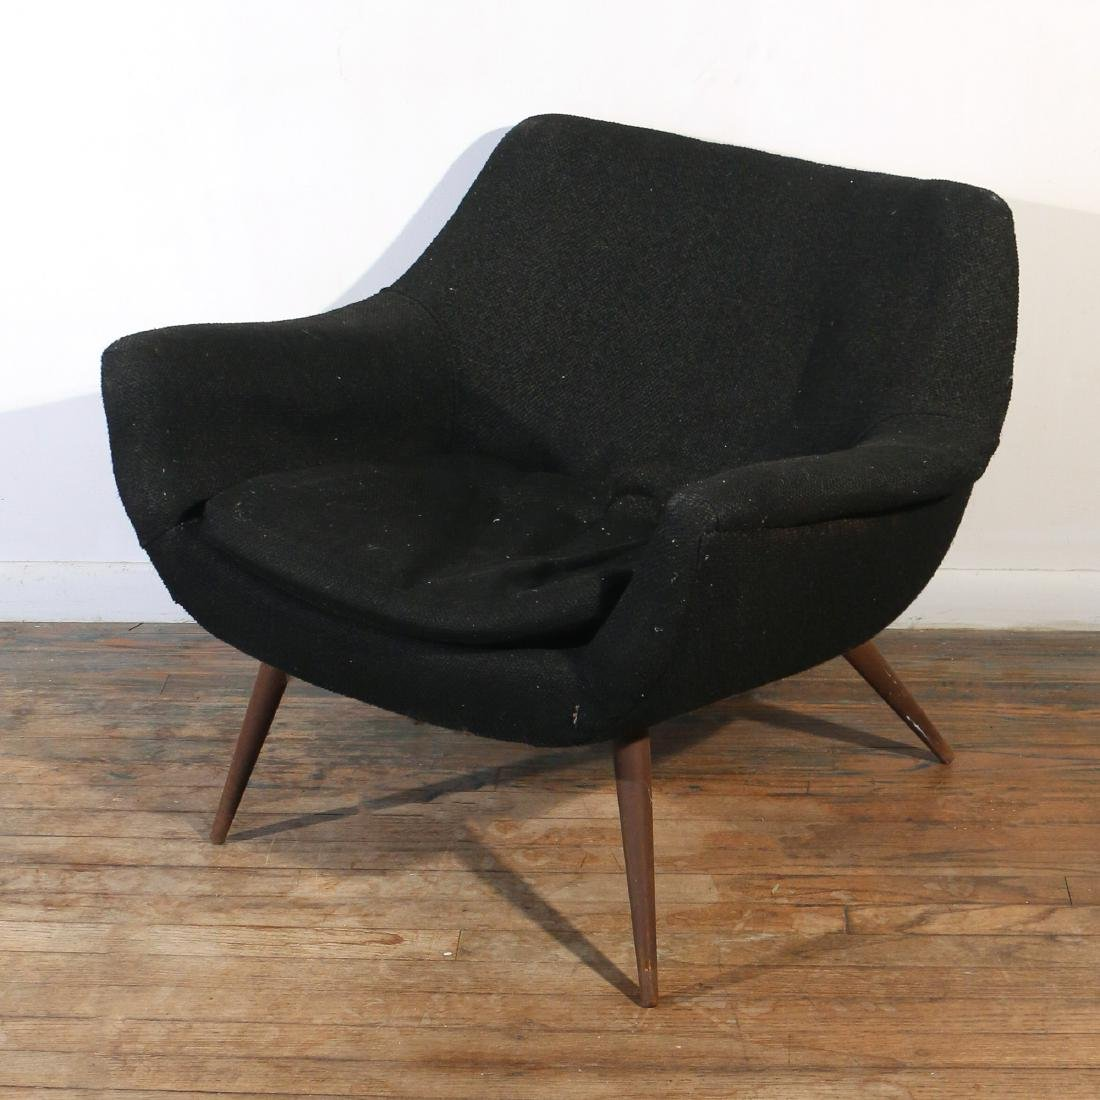 LAWRENCE PEABODY SCULPTURAL LOUNGE CHAIR